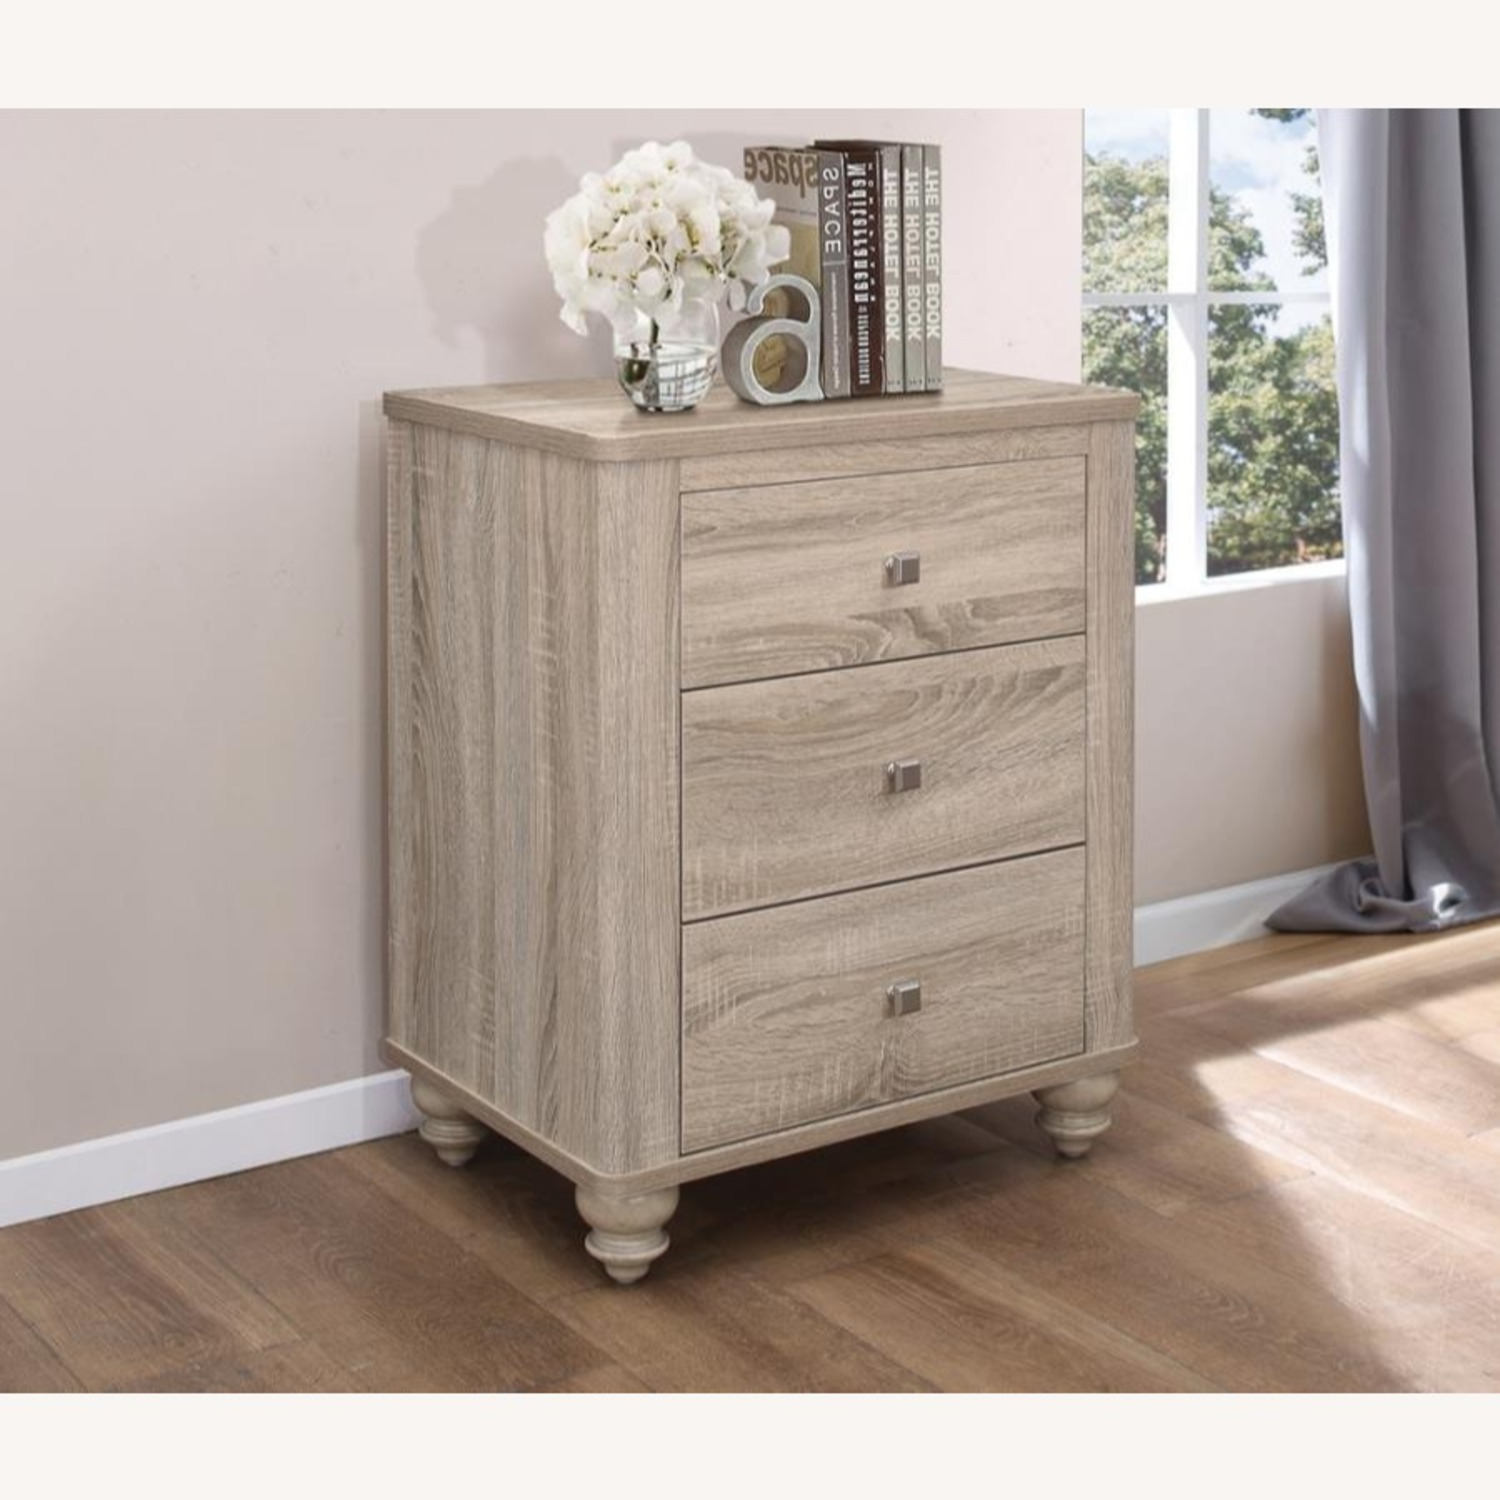 3-Drawer Nightstand In Natural Oak Finish - image-4